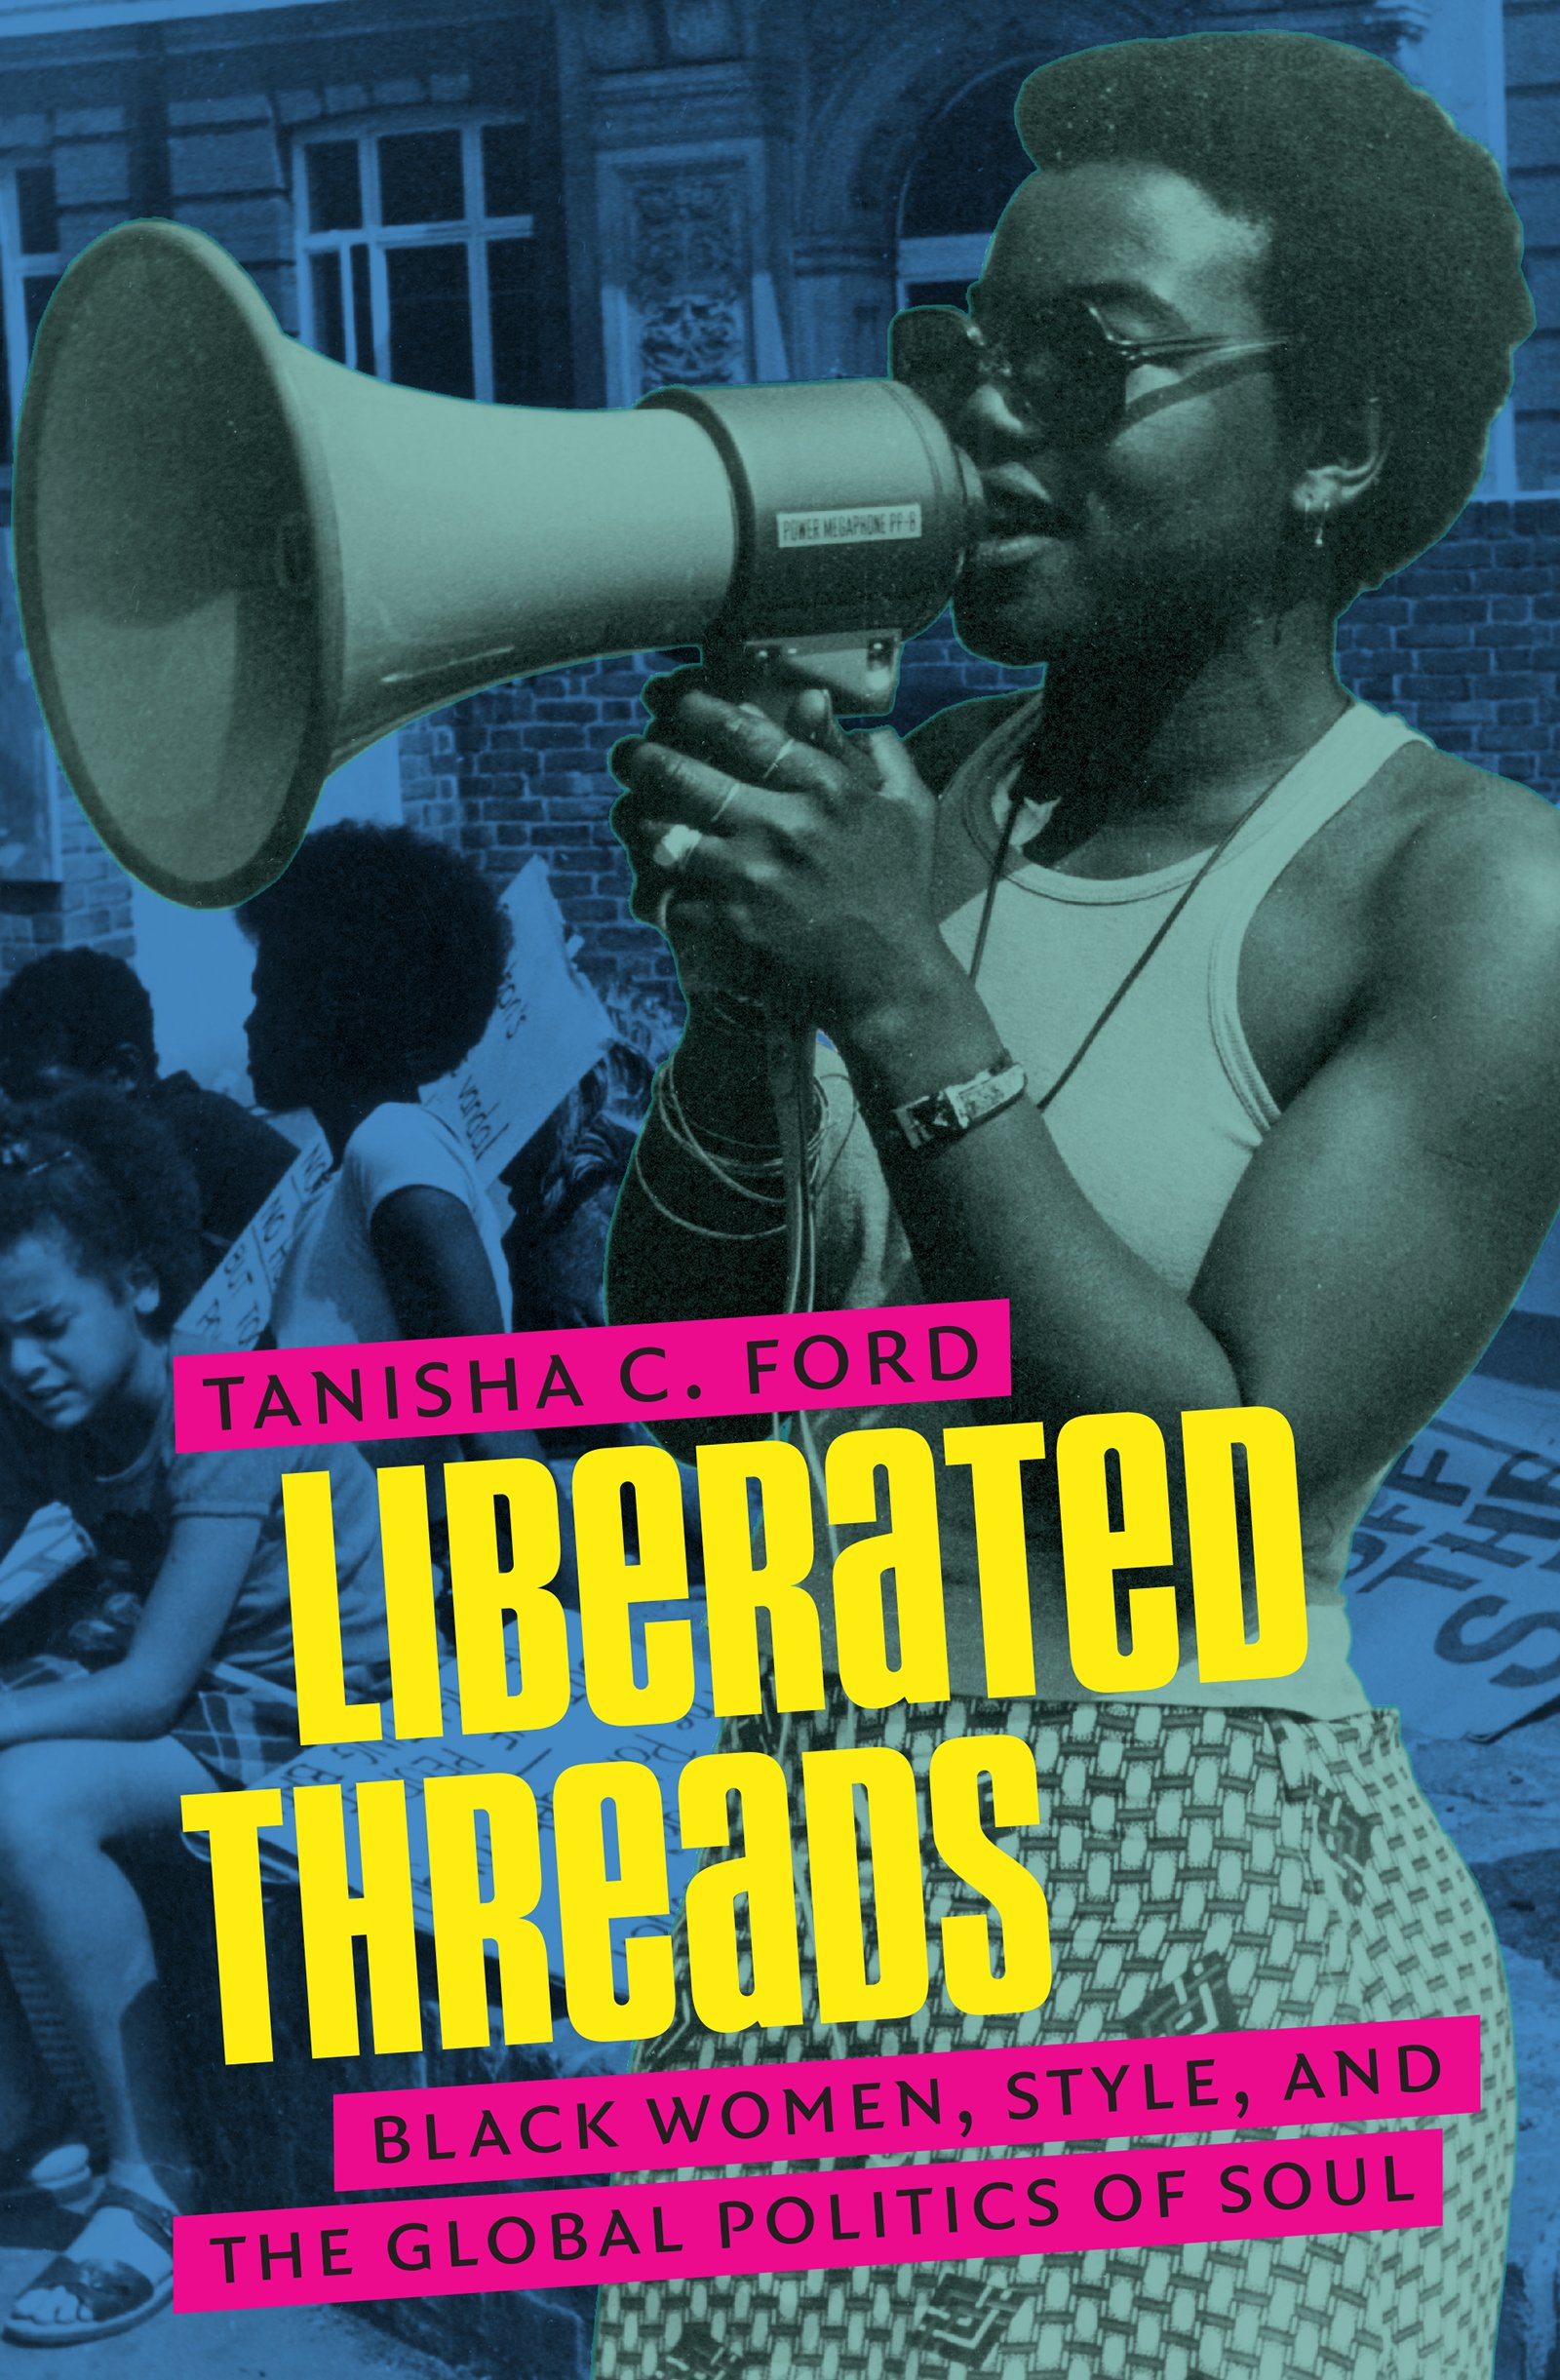 Liberated threads : black women, style, and the global politics of soul.